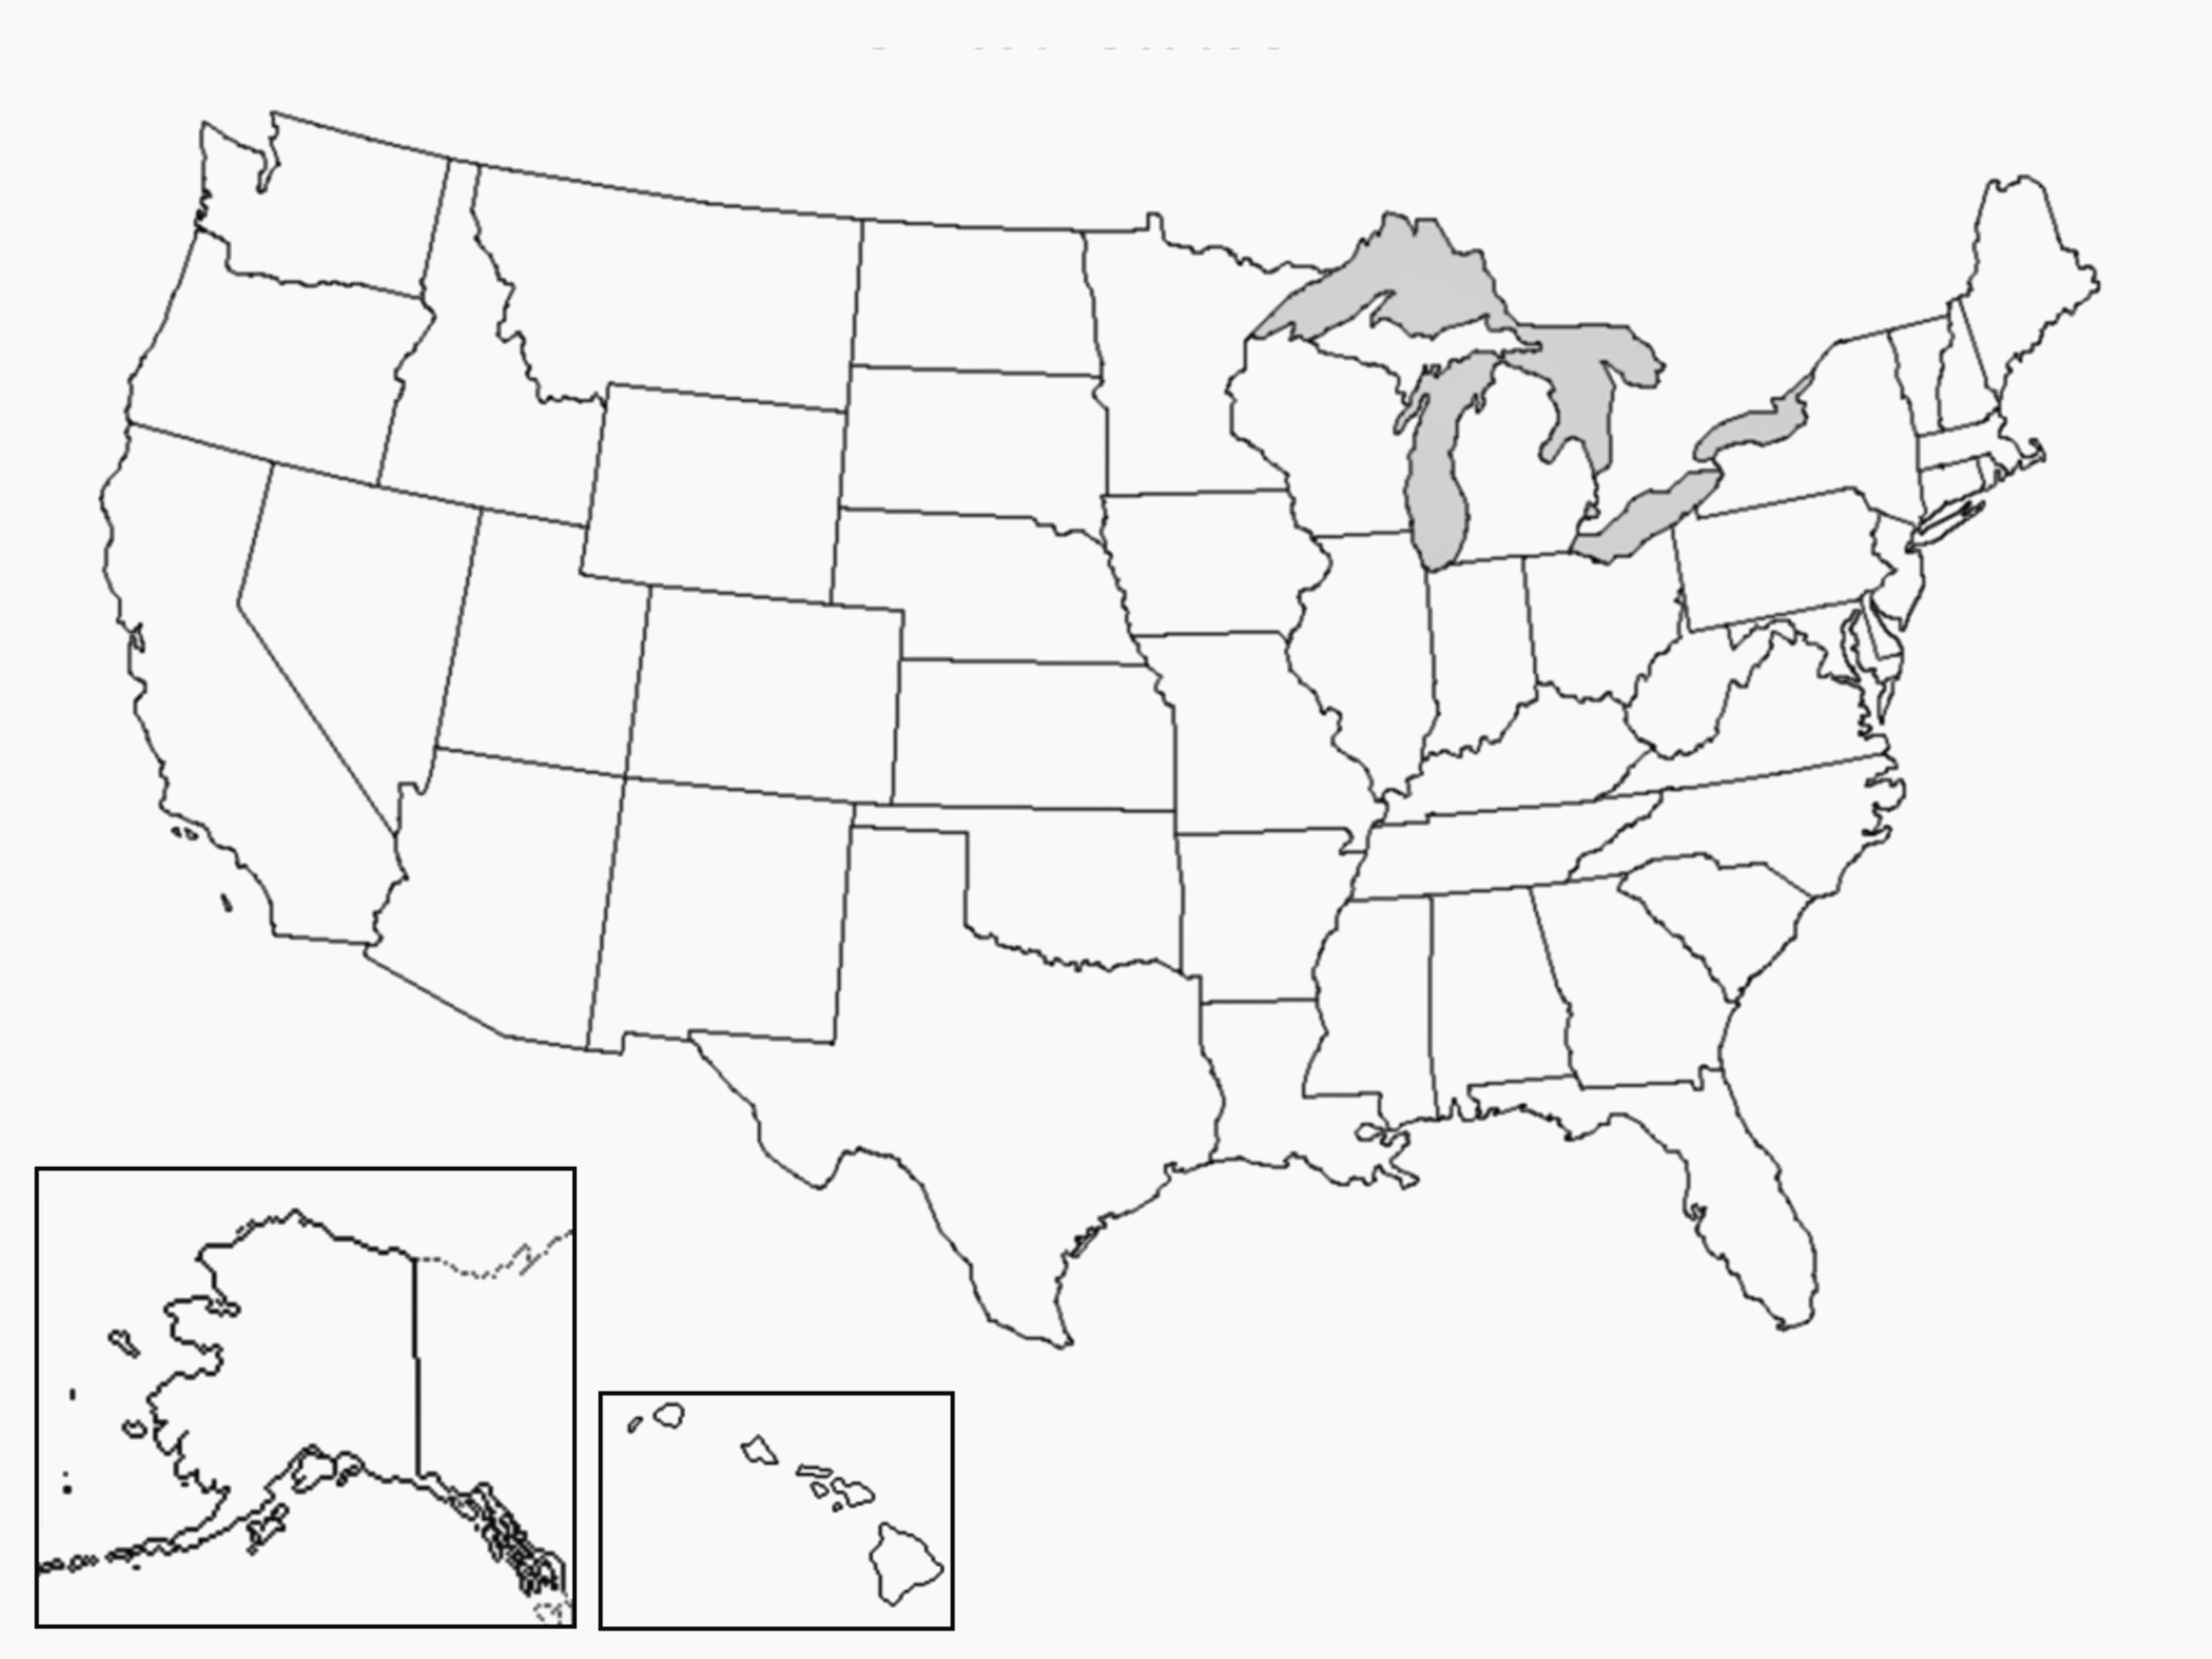 america outline vector at getdrawings free for personal use Map of Eastern North America 4800x3600 united states of america blank map new united states map outline